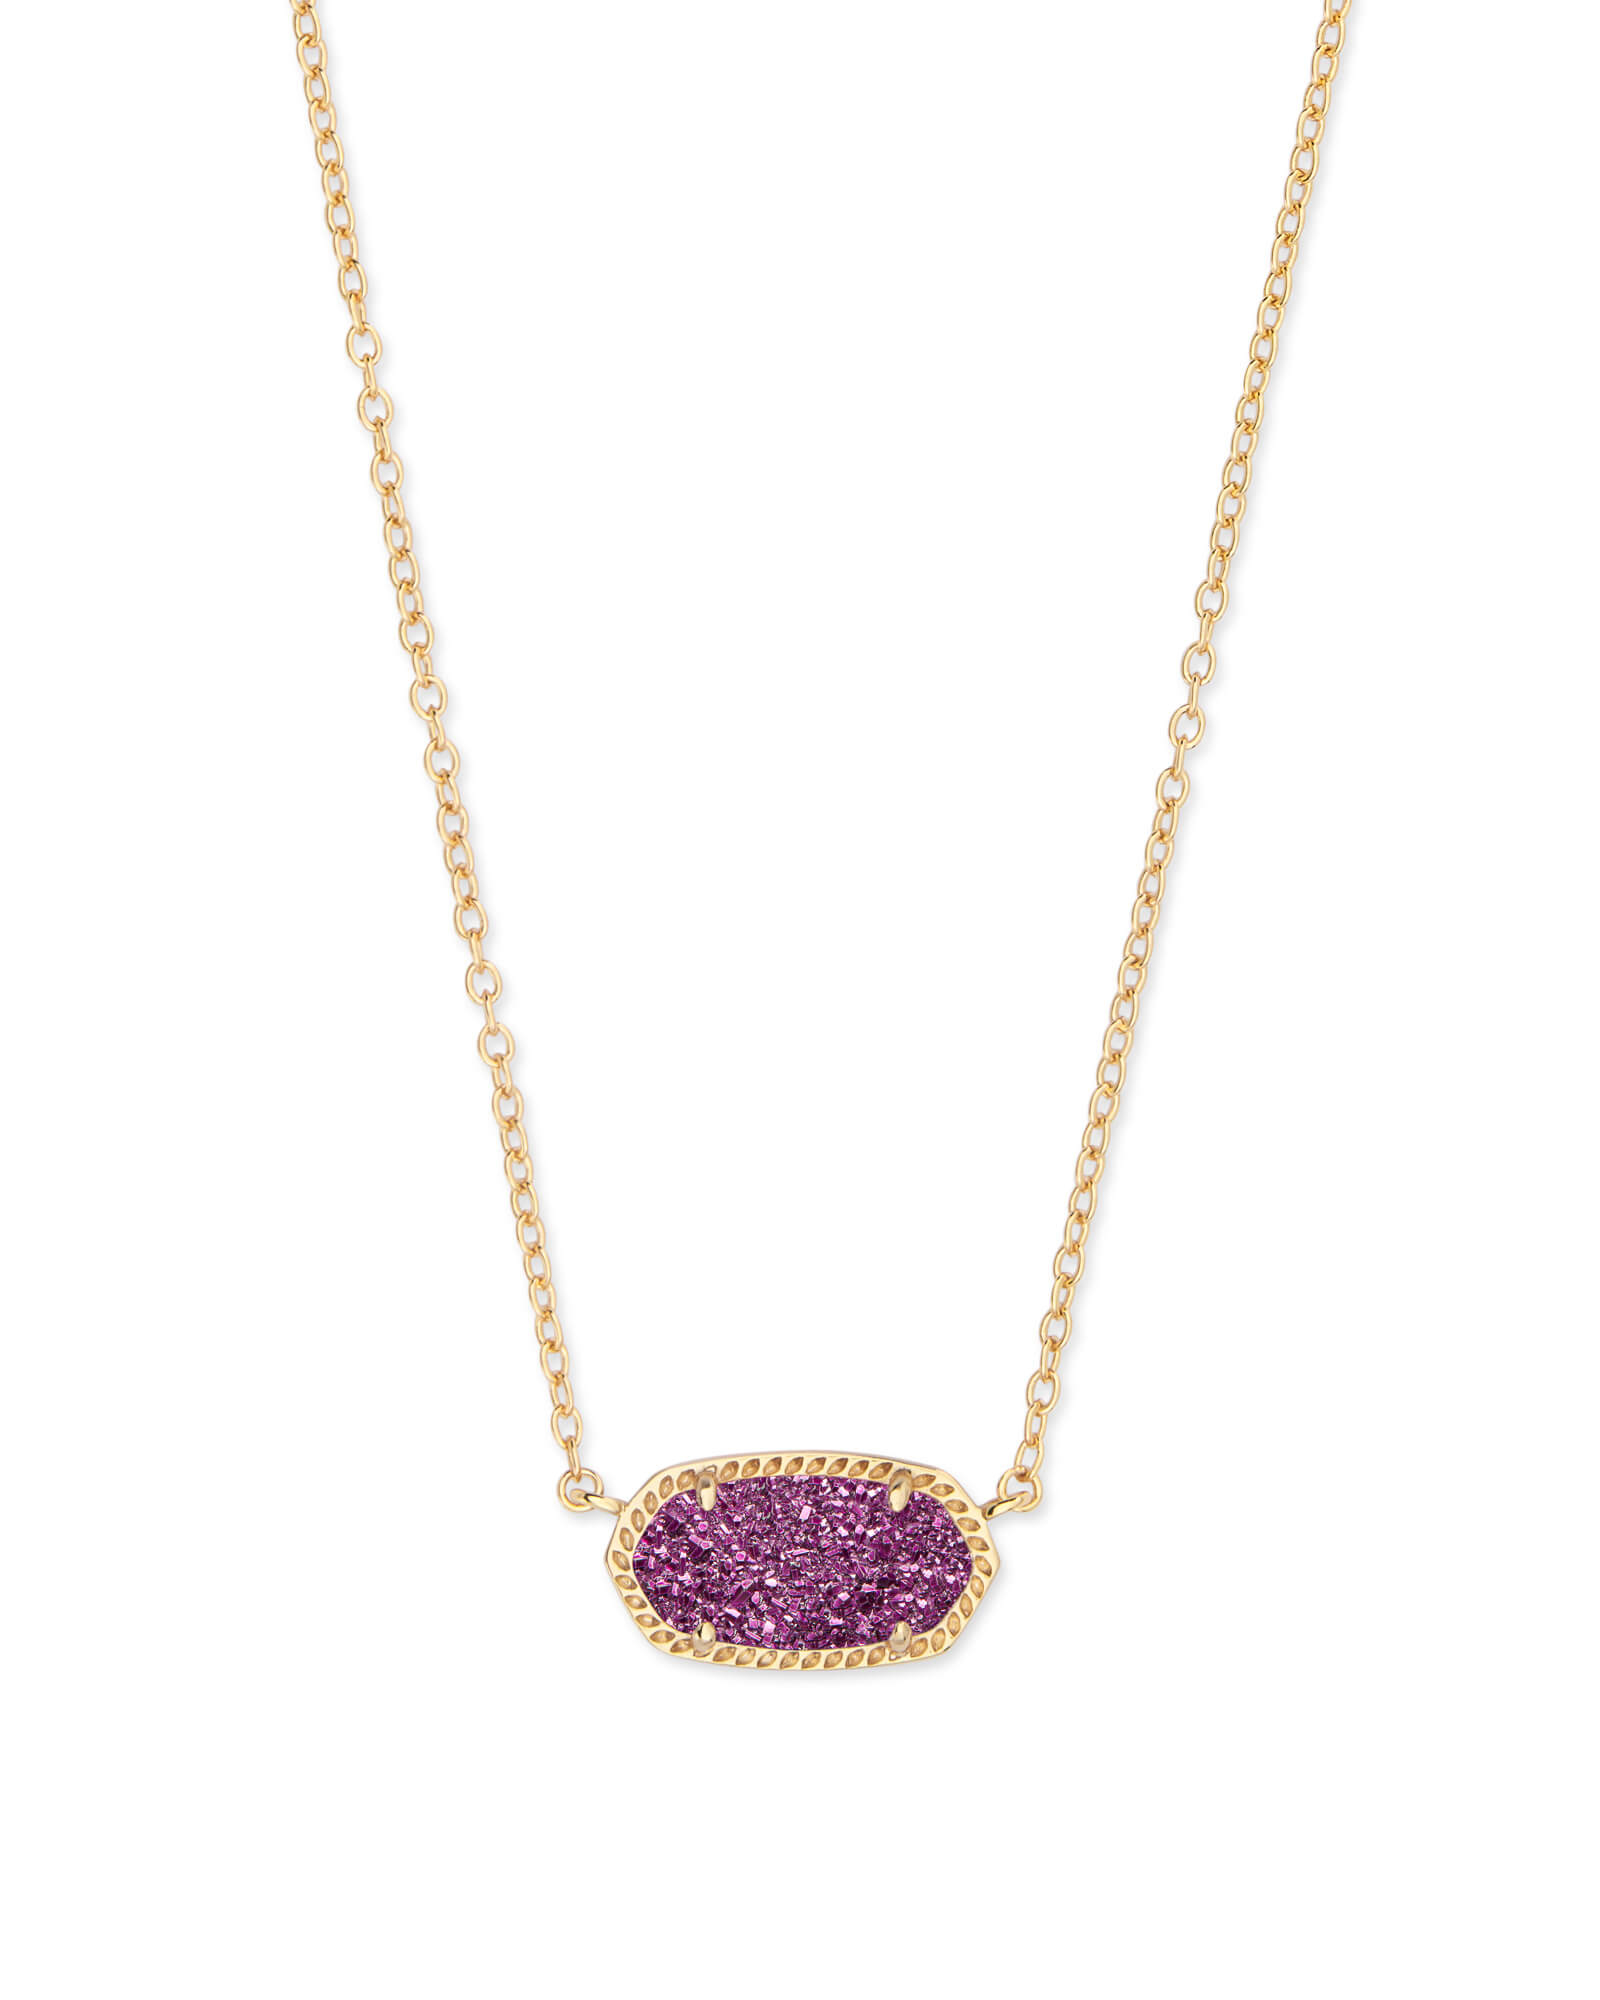 Elisa Gold Pendant Necklace in Amethyst Drusy